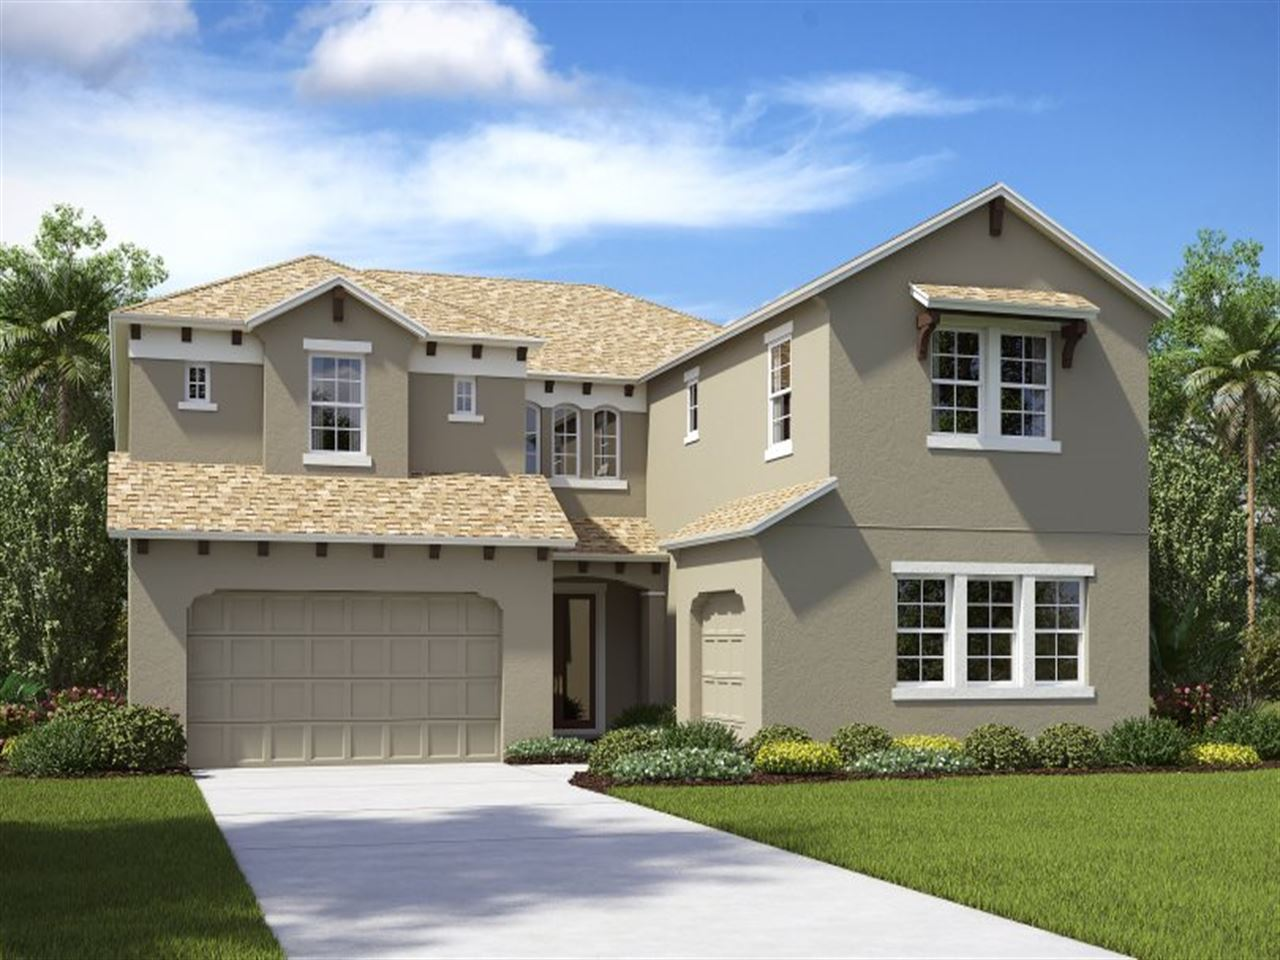 Marsh pointe by ryland homes christopher henry realtor for Ryland homes